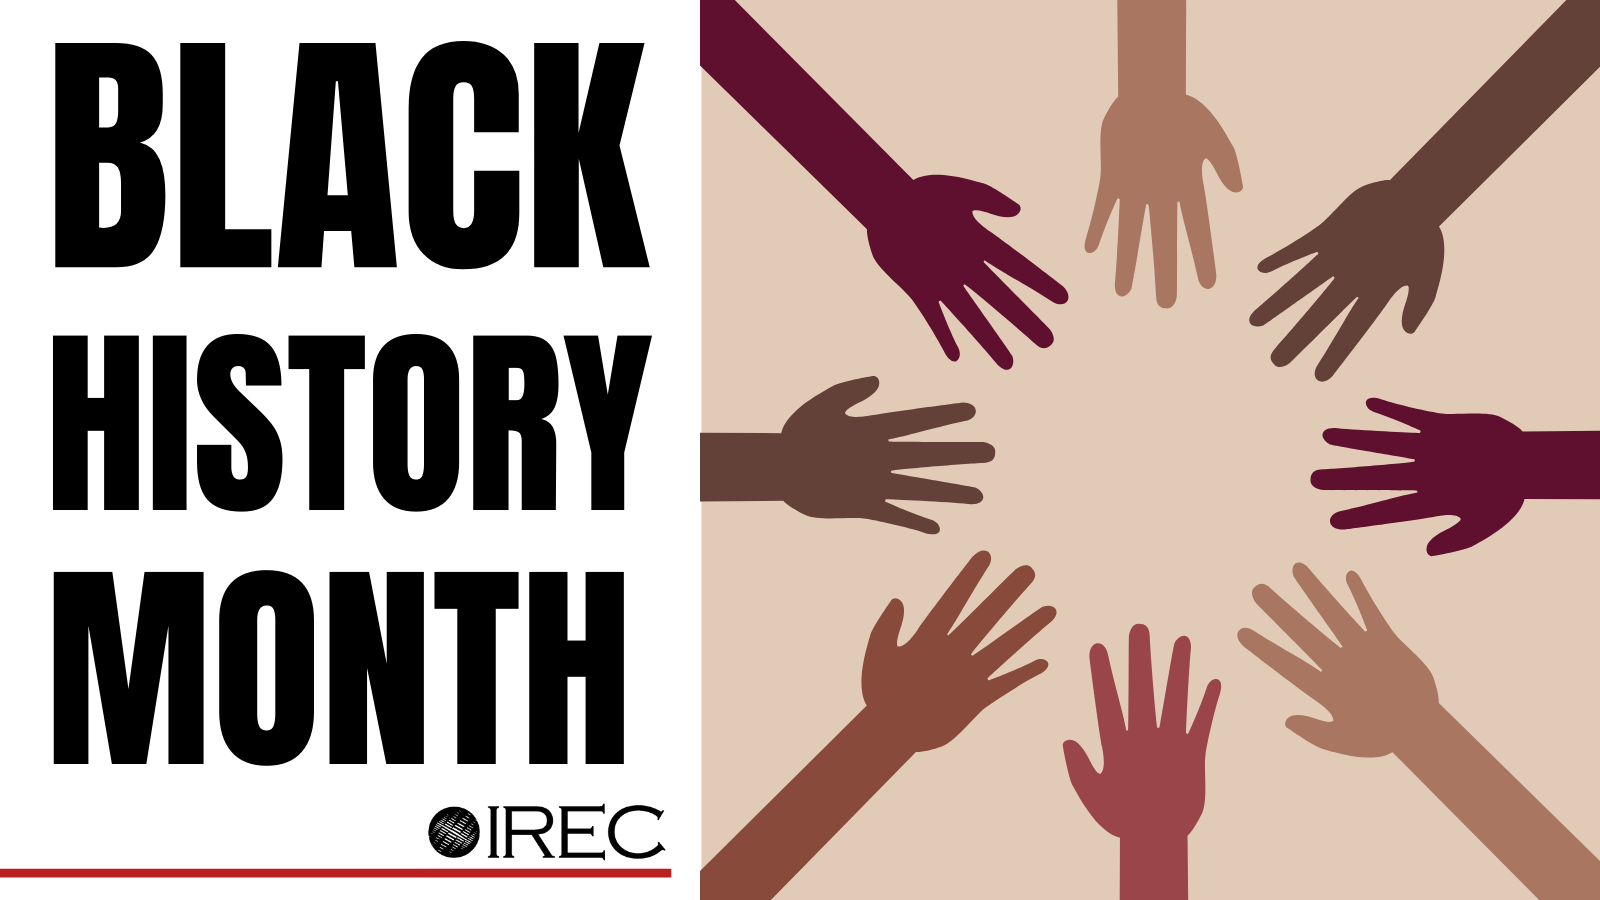 Environmental History and Black History are Intertwined: Celebrating Black History Month